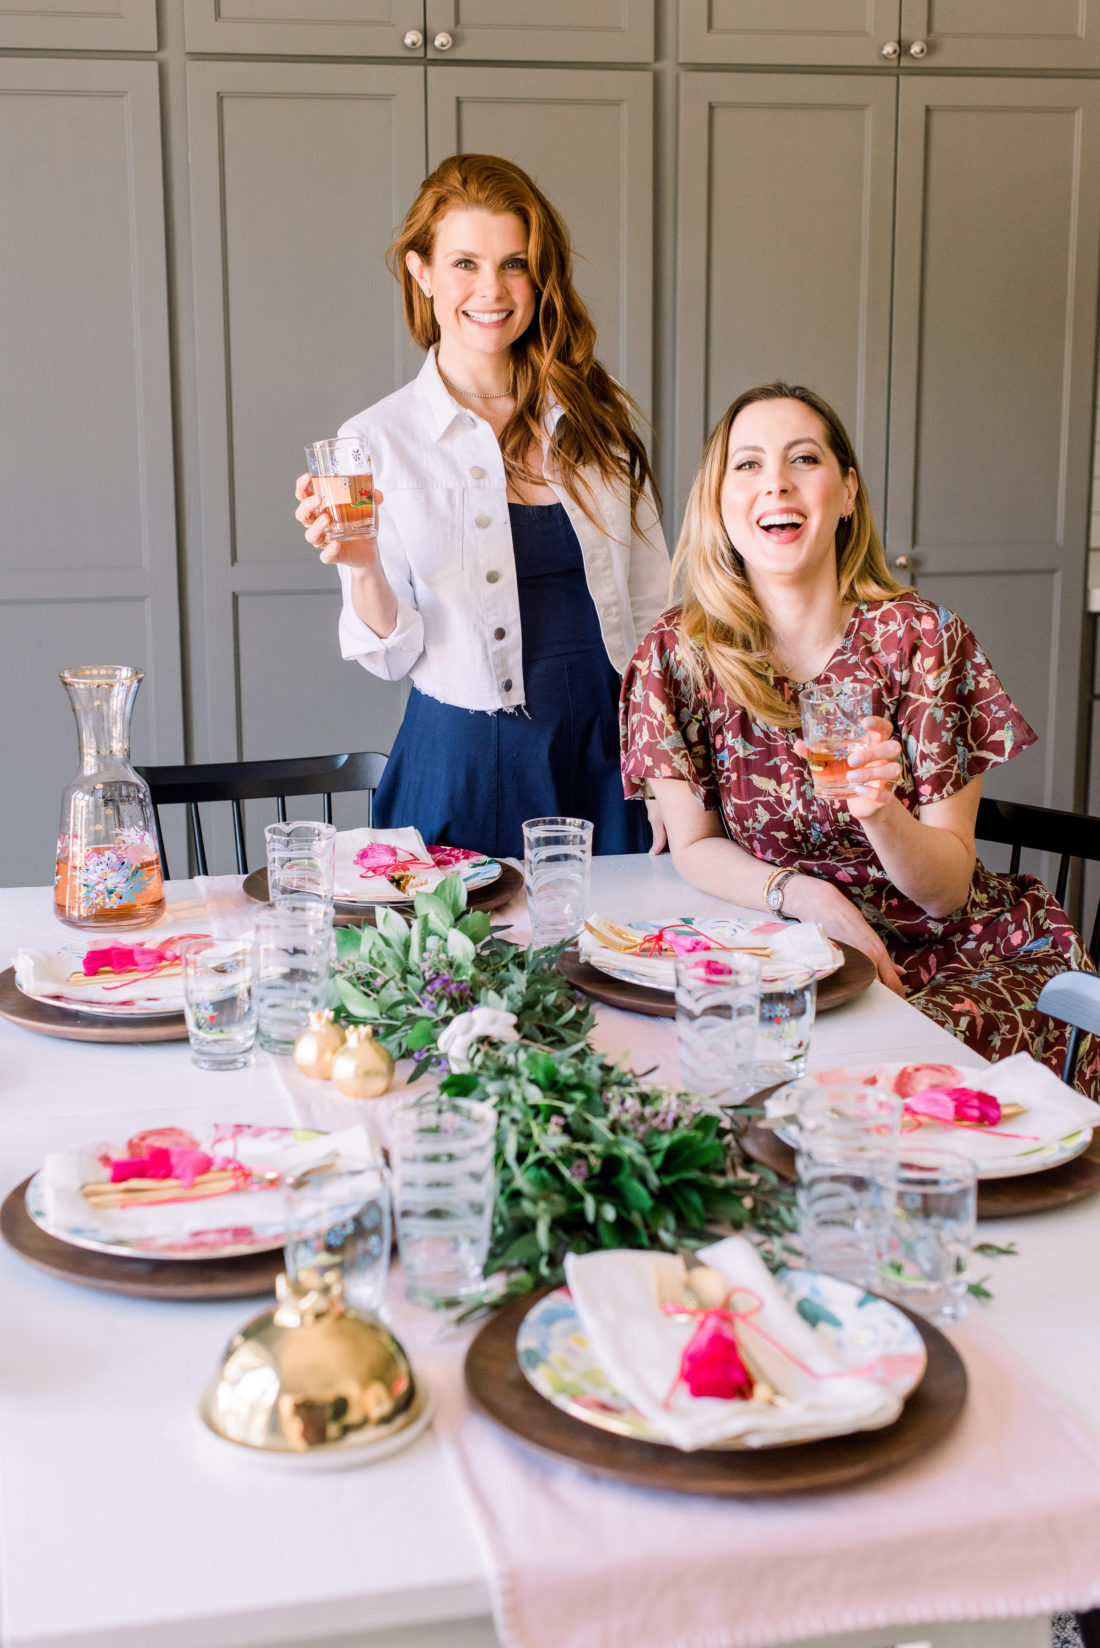 Eva Amurri Martino and Joanna Garcia Swisher share two tabletop decoration ideas for Easter